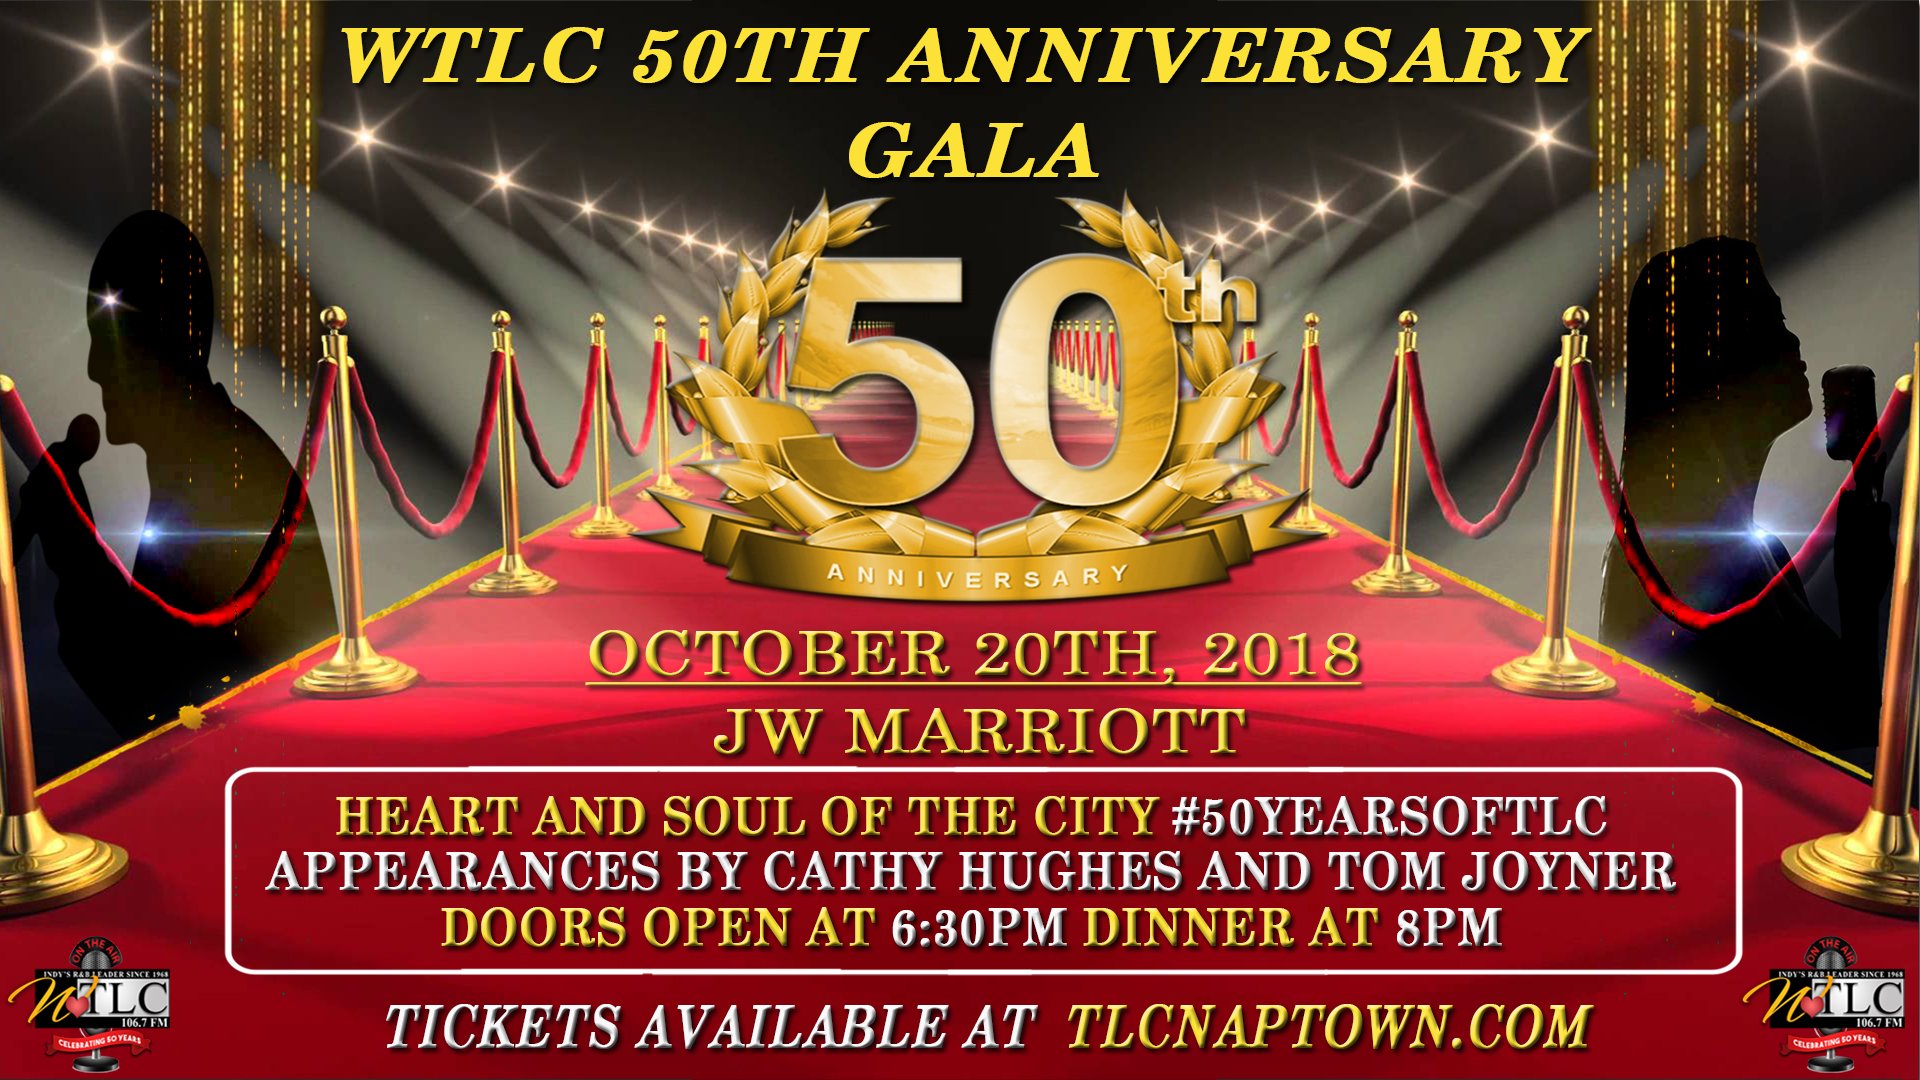 WTLC 50th Anniversary Gala Flyer